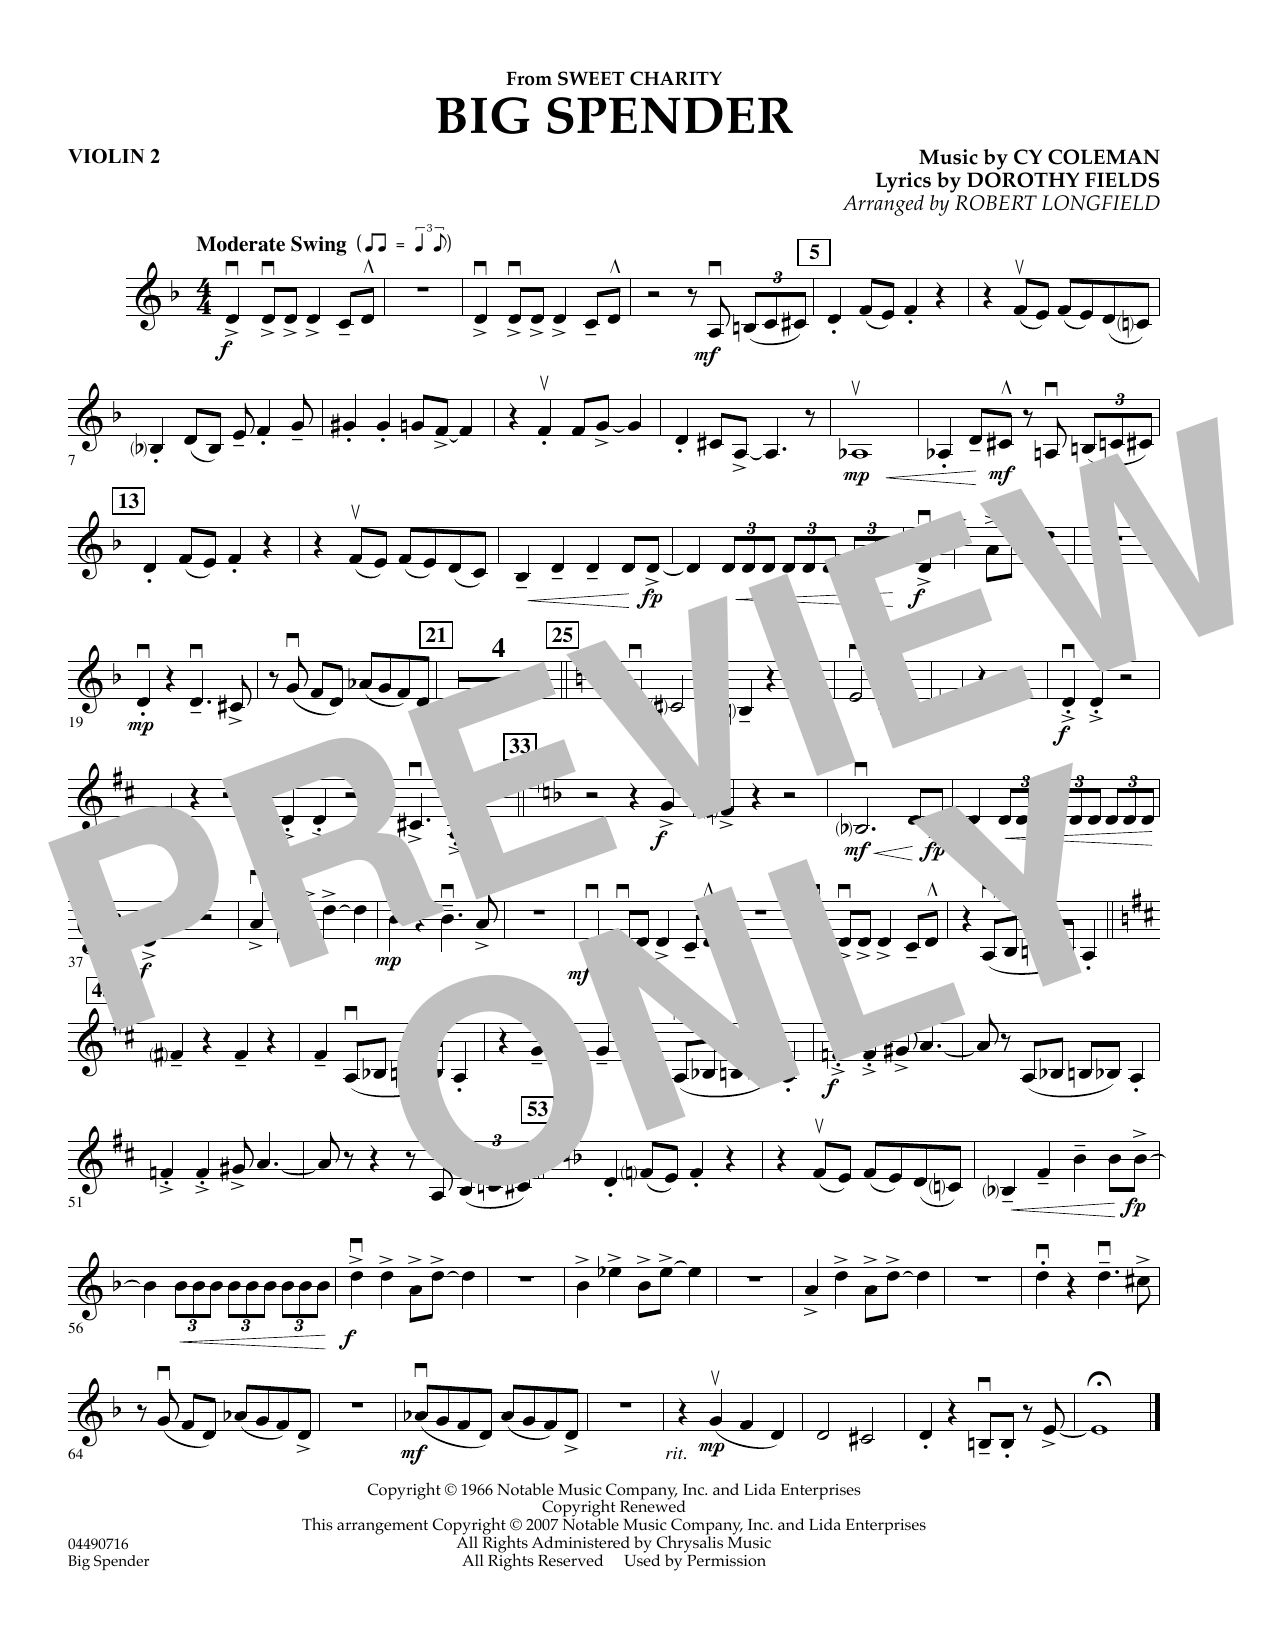 Cy Coleman: Big Spender (Sweet Charity) - Violin 2 (Orchestra)